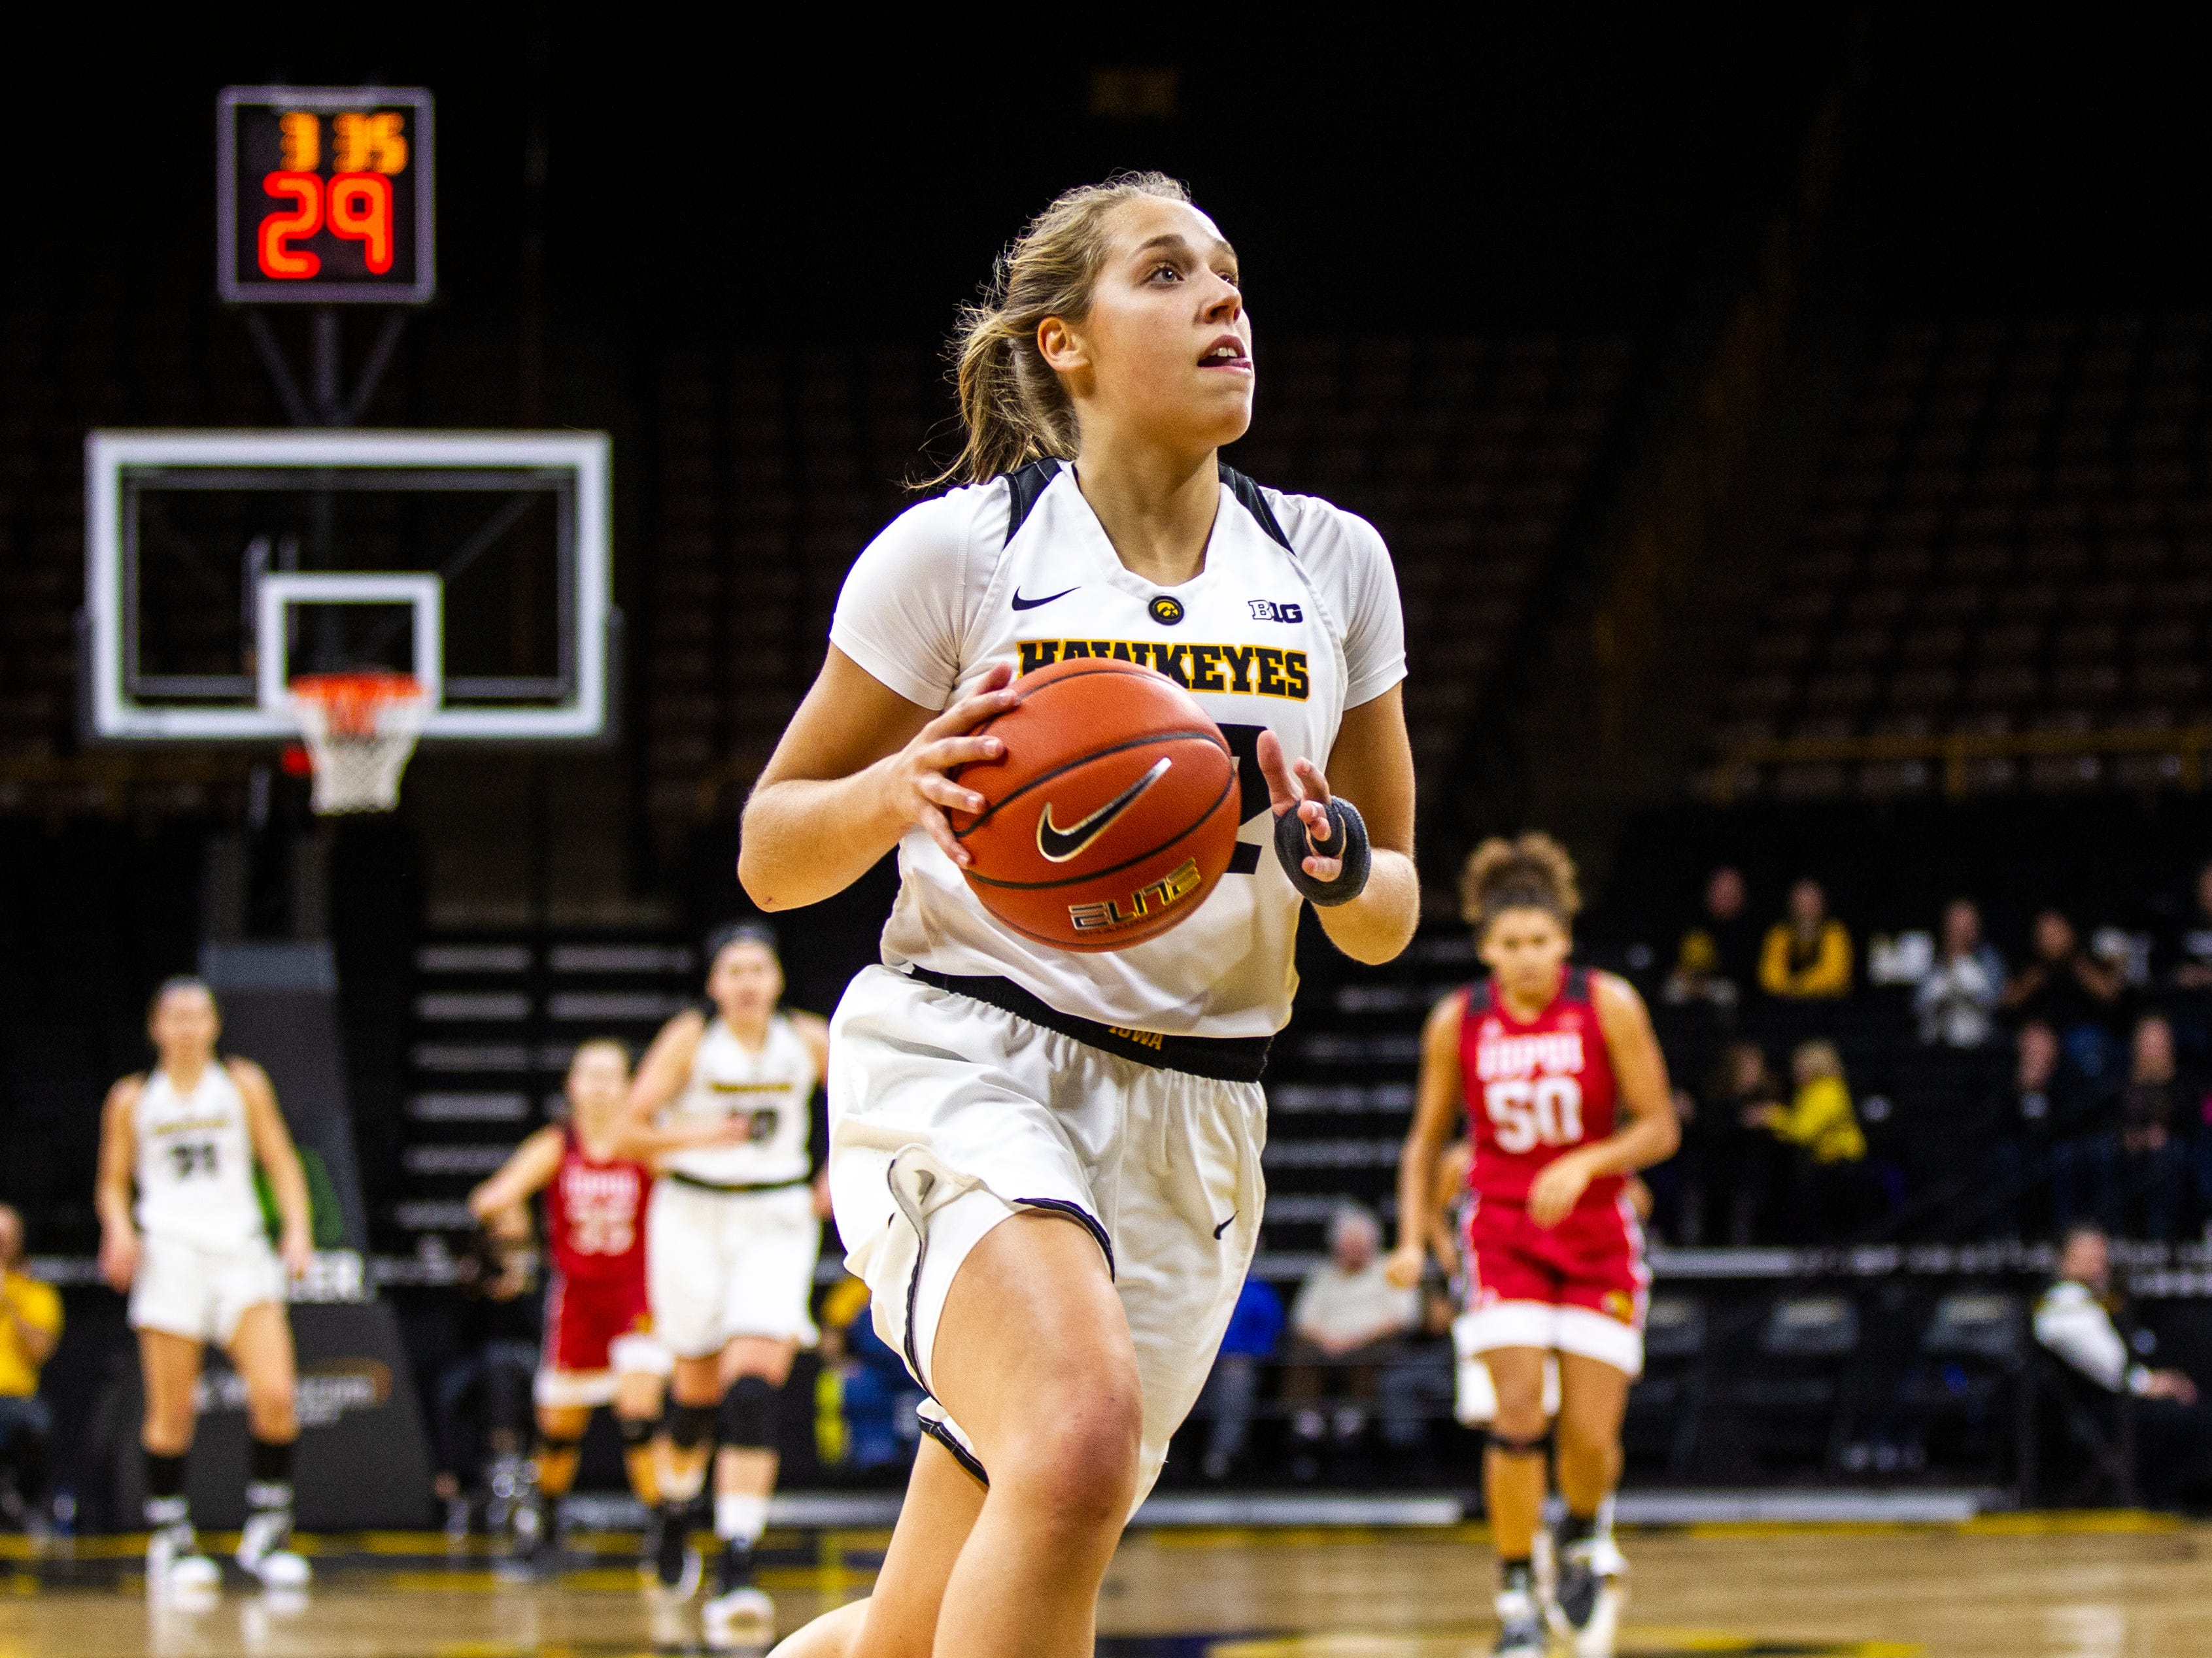 Iowa guard Kathleen Doyle (22) drives to the hoop after getting a steal during a NCAA women's basketball game on Saturday, Dec. 8, 2018, at Carver-Hawkeye Arena in Iowa City.